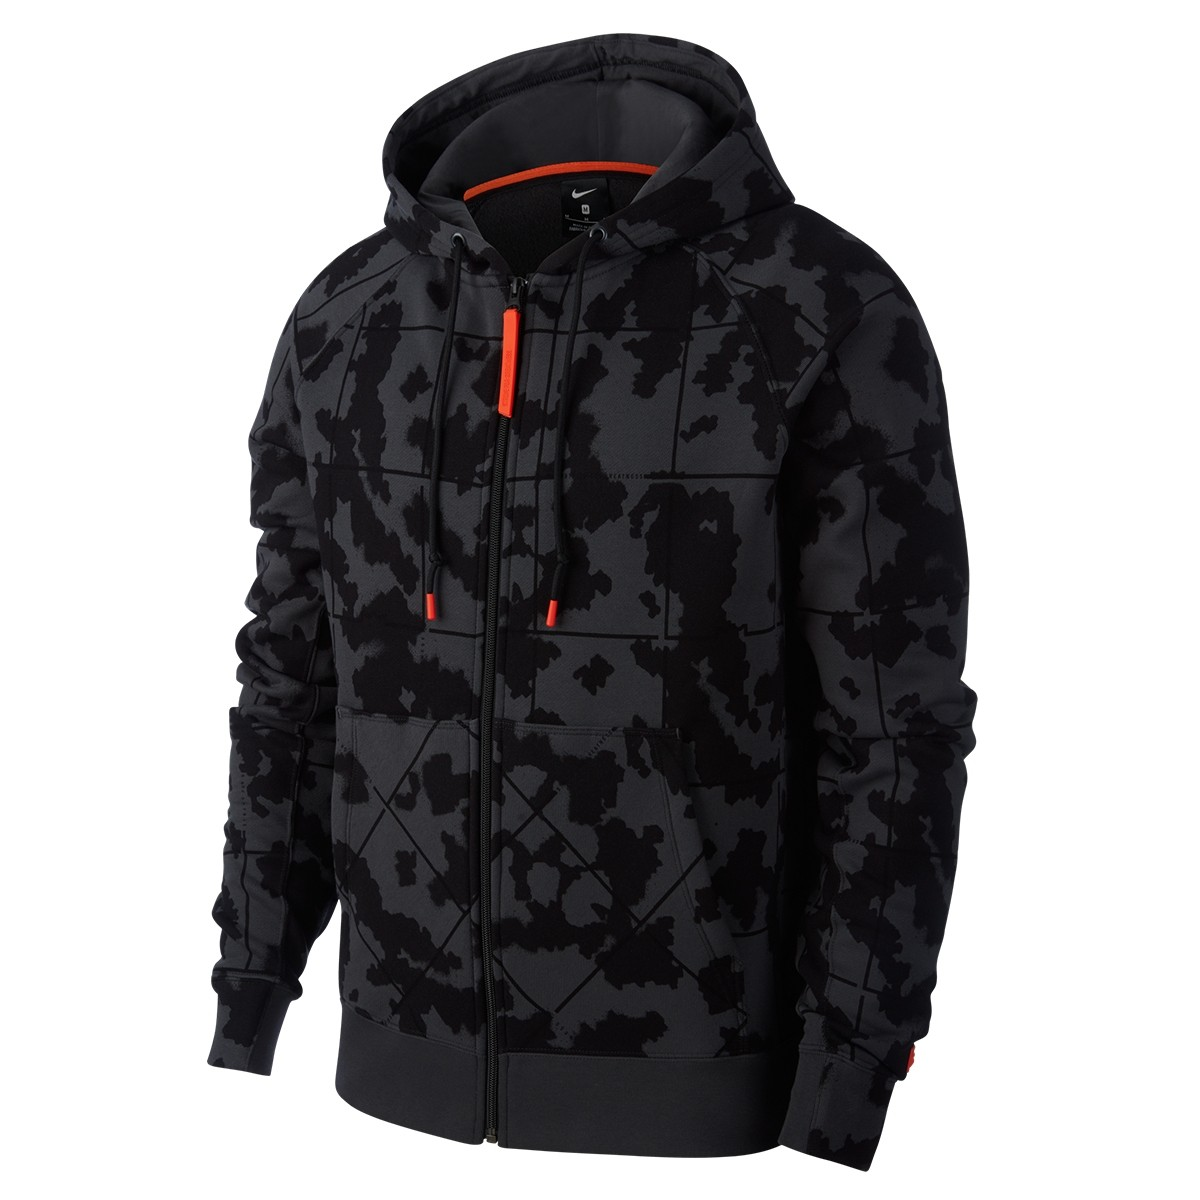 Nike Lebron Hoodie Fleece 'Black Camo'-AT3913-060